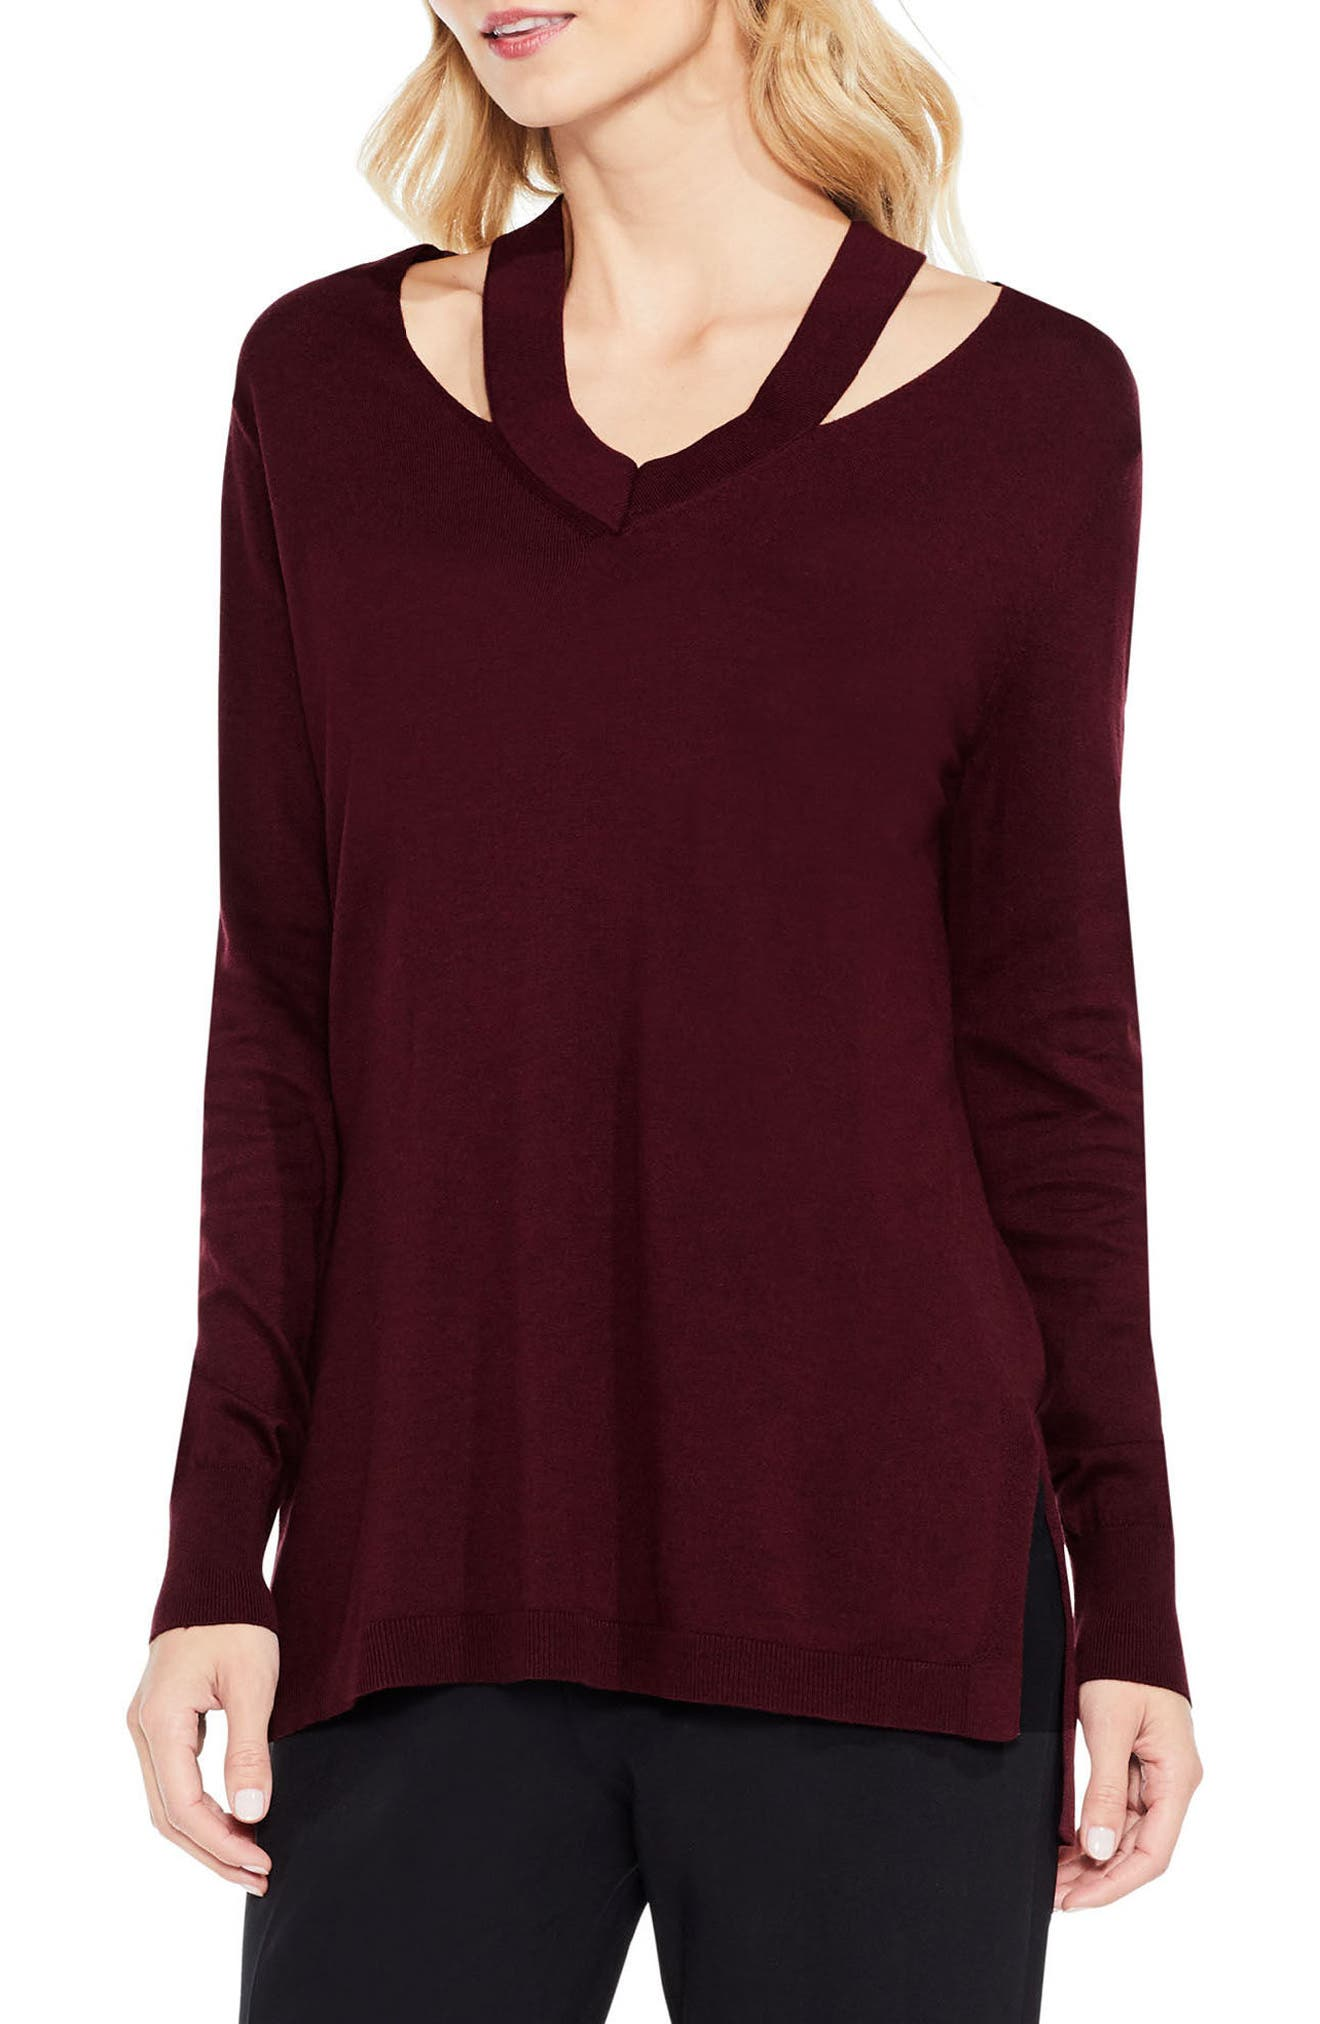 Vince Camuto Cutout Neck Sweater